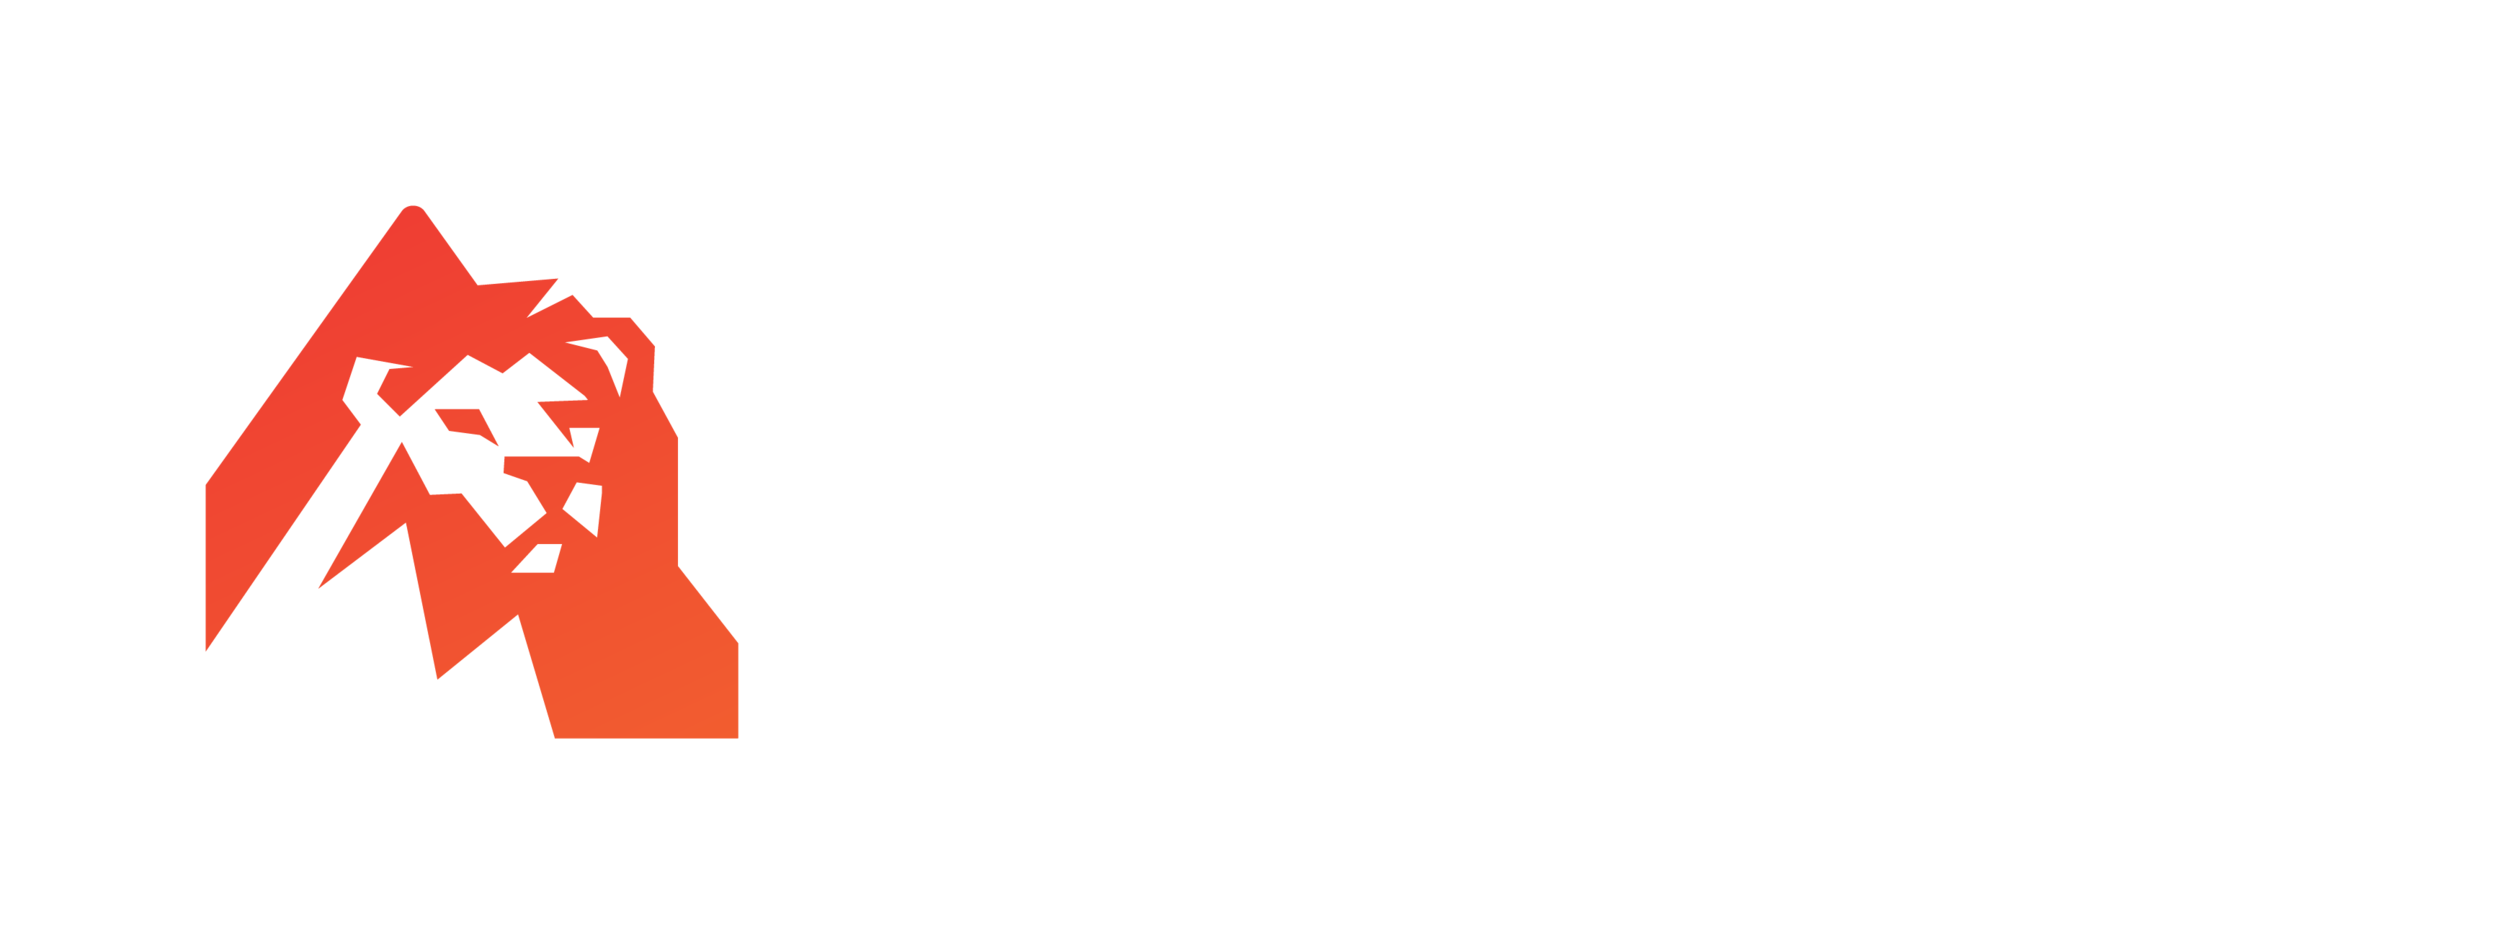 Cryptolions_logo_inv_1@4x-8.png